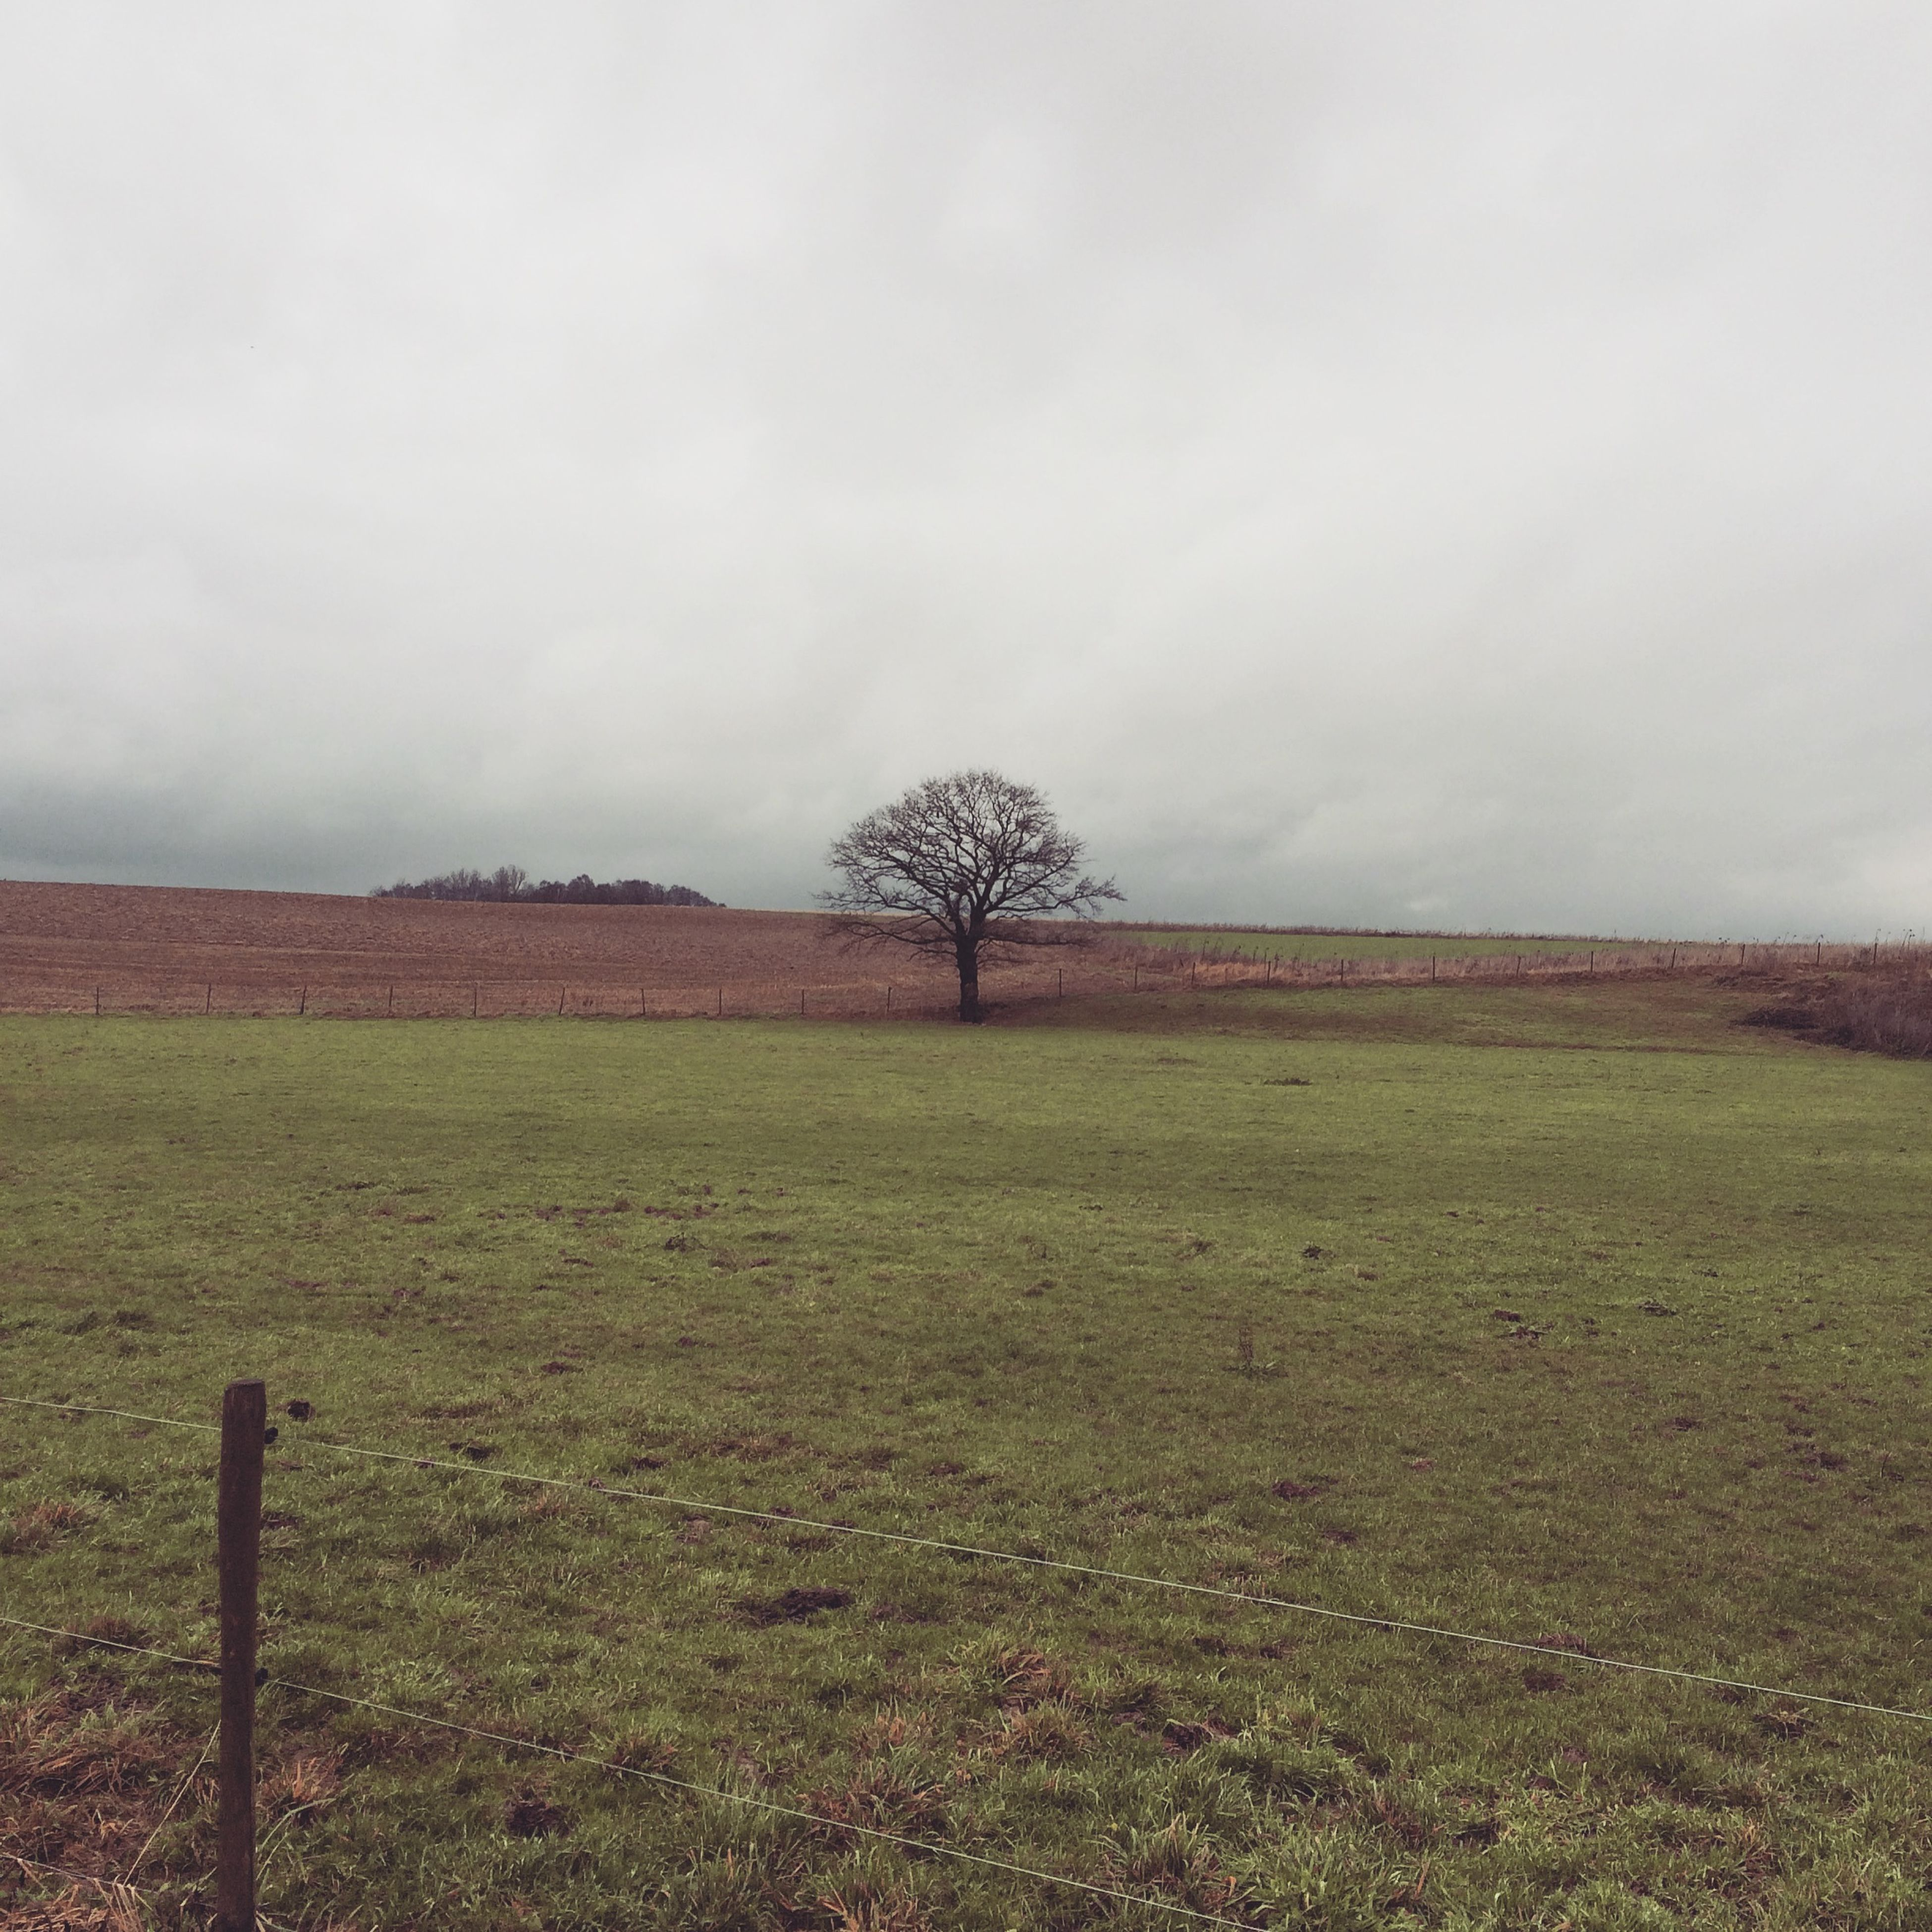 landscape, sky, field, tranquility, tranquil scene, grass, tree, scenics, nature, cloud - sky, beauty in nature, grassy, rural scene, non-urban scene, bare tree, fence, cloudy, growth, day, cloud